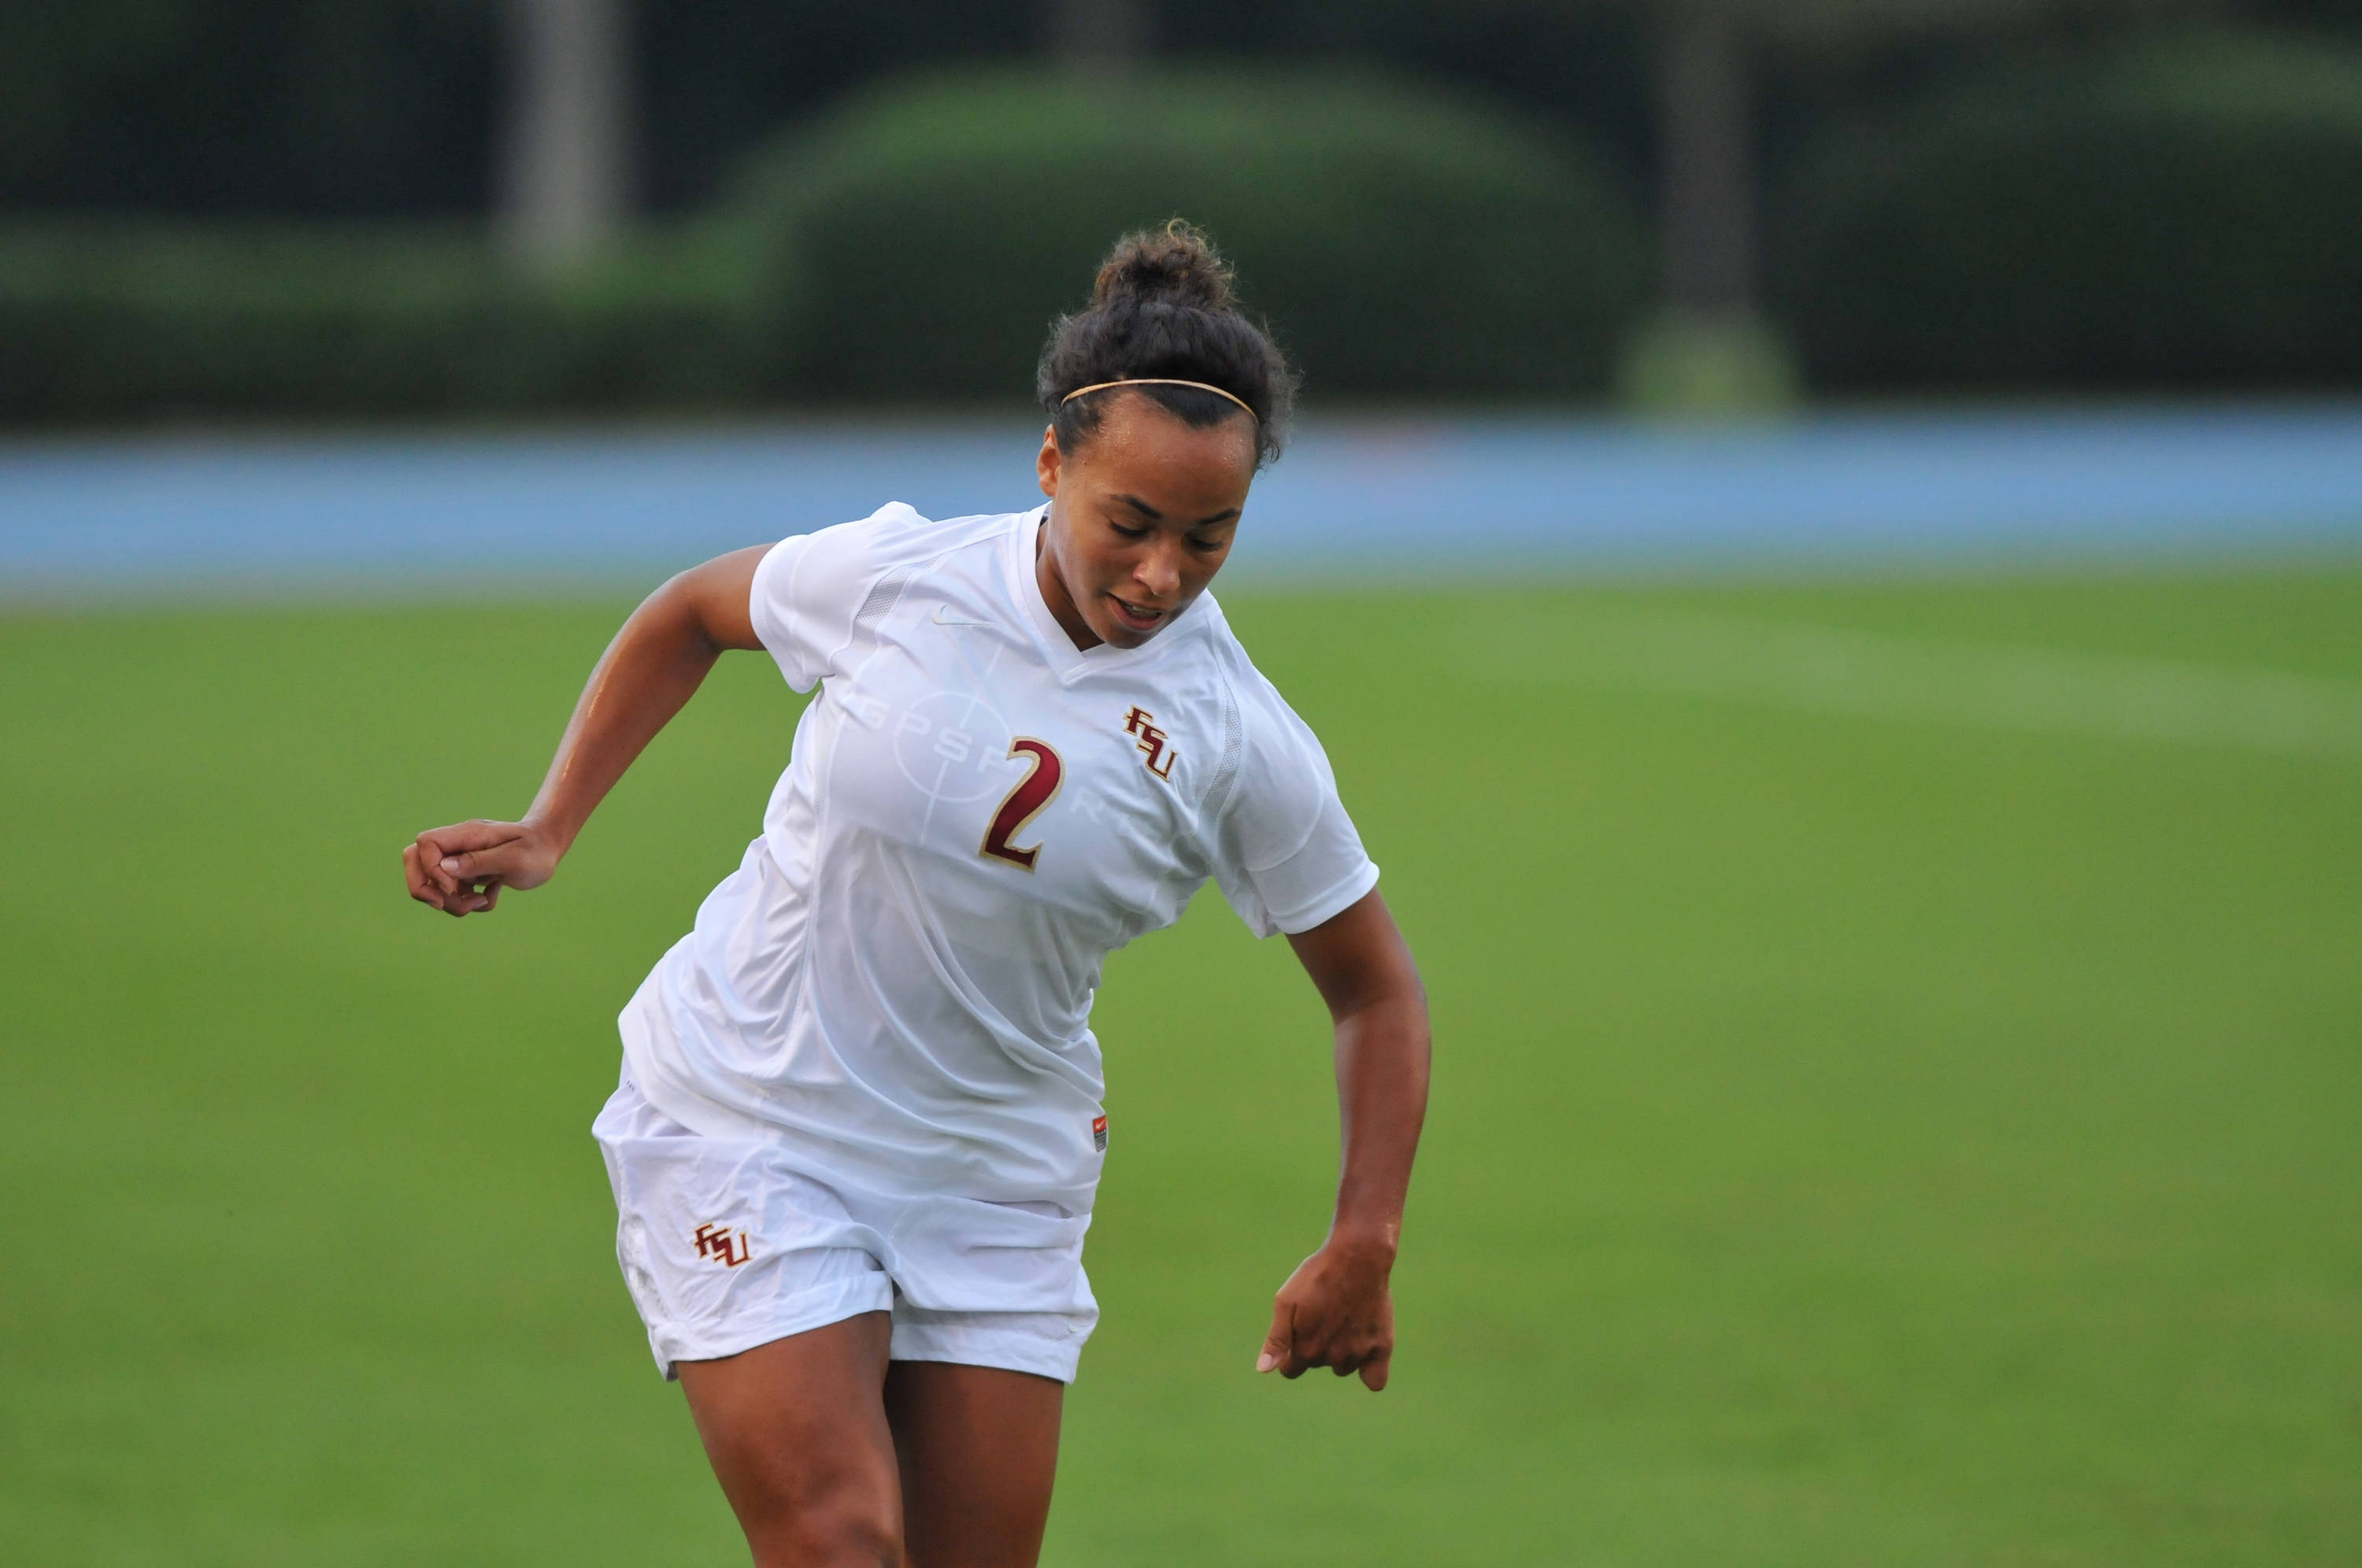 Ines Jaurena on the ball in the first half against Florida.